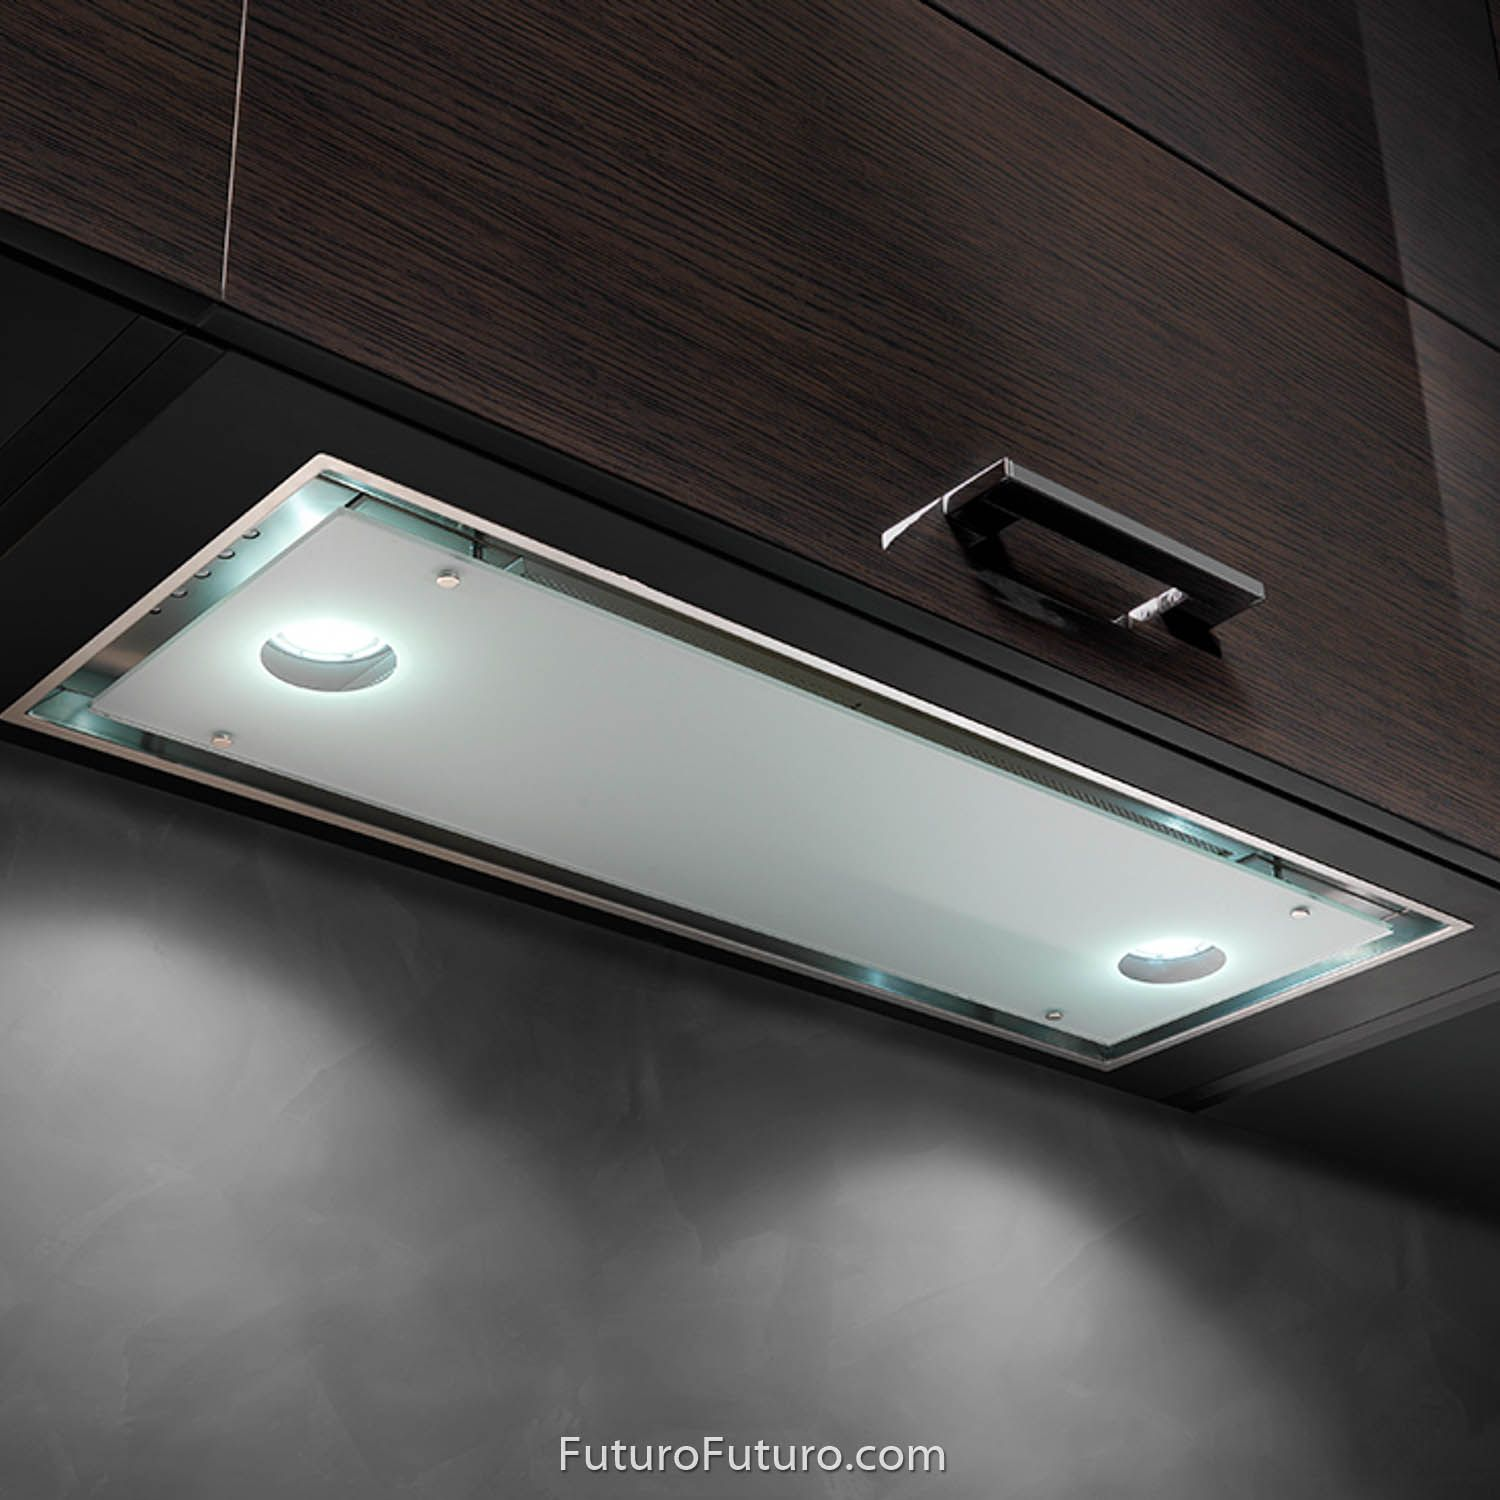 30 Raccolta Insert Designed For Kitchens Where A Minimal Clean Look Is Desired The Raccolta Series Of Range Hood Inserts From Futuro Futuro Is The All In